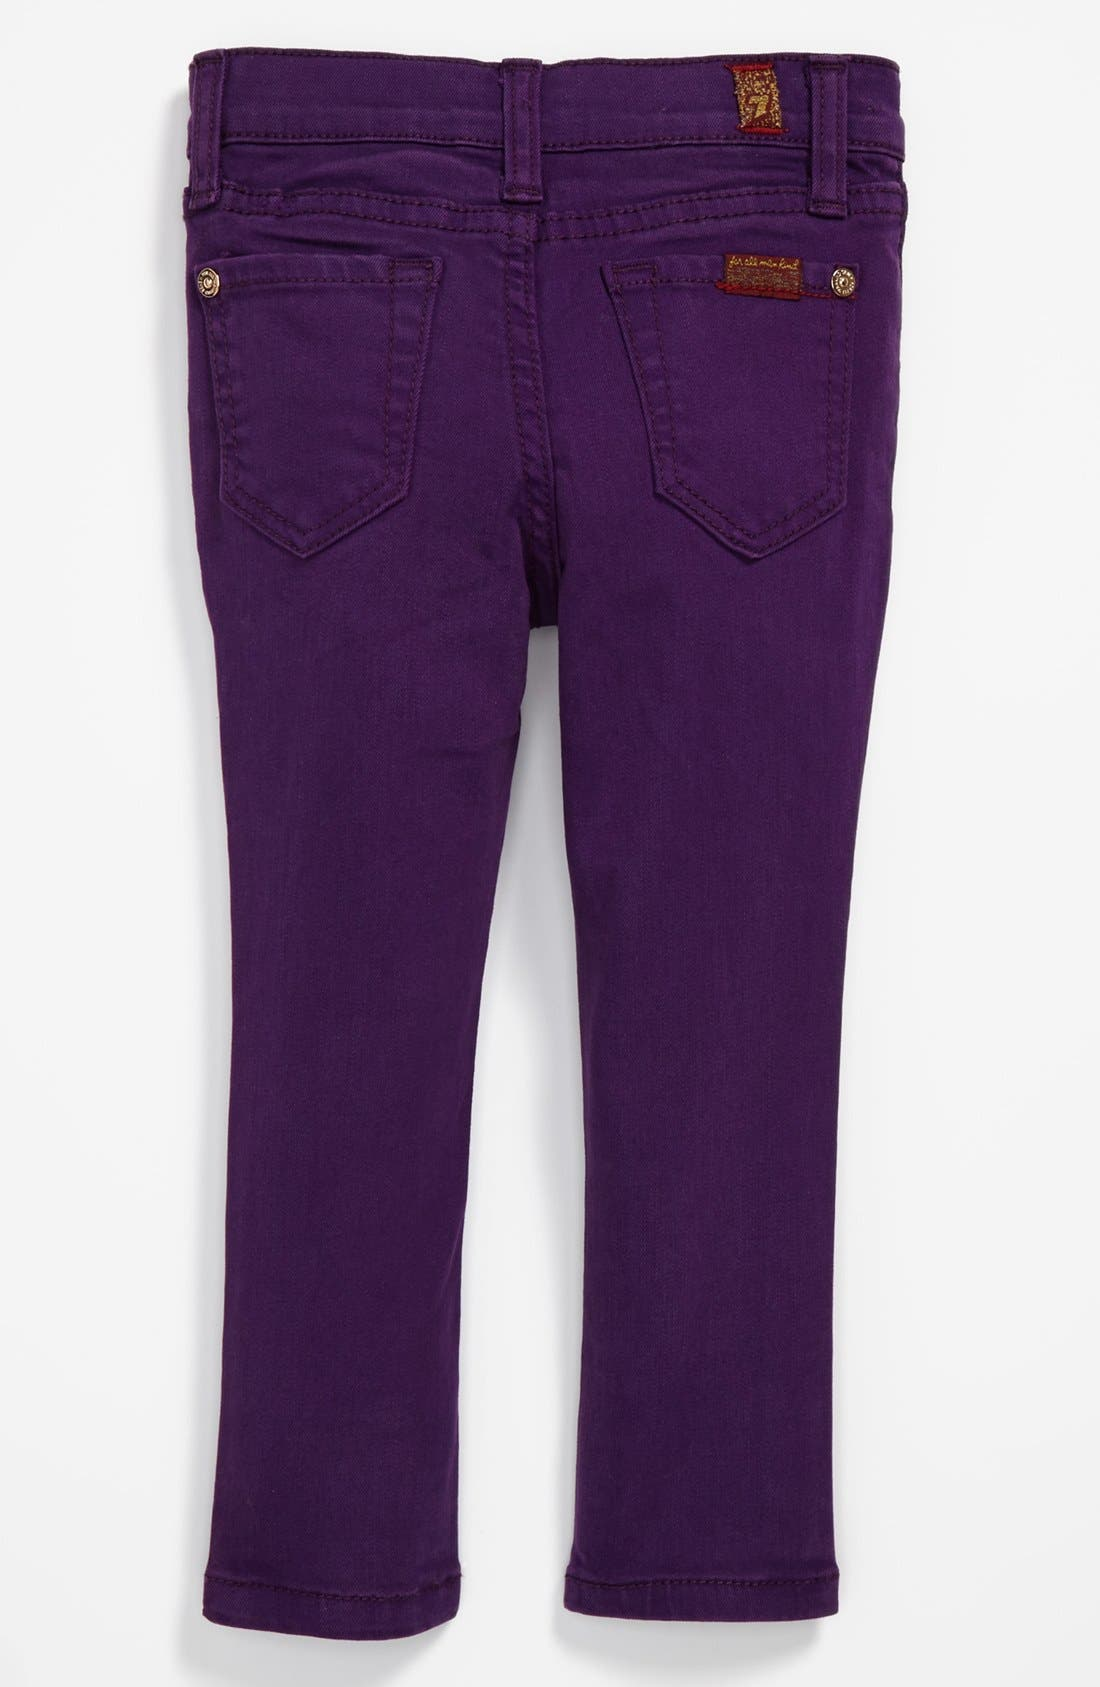 Alternate Image 1 Selected - 7 For All Mankind® 'The Skinny' Jeans (Toddler Girls)